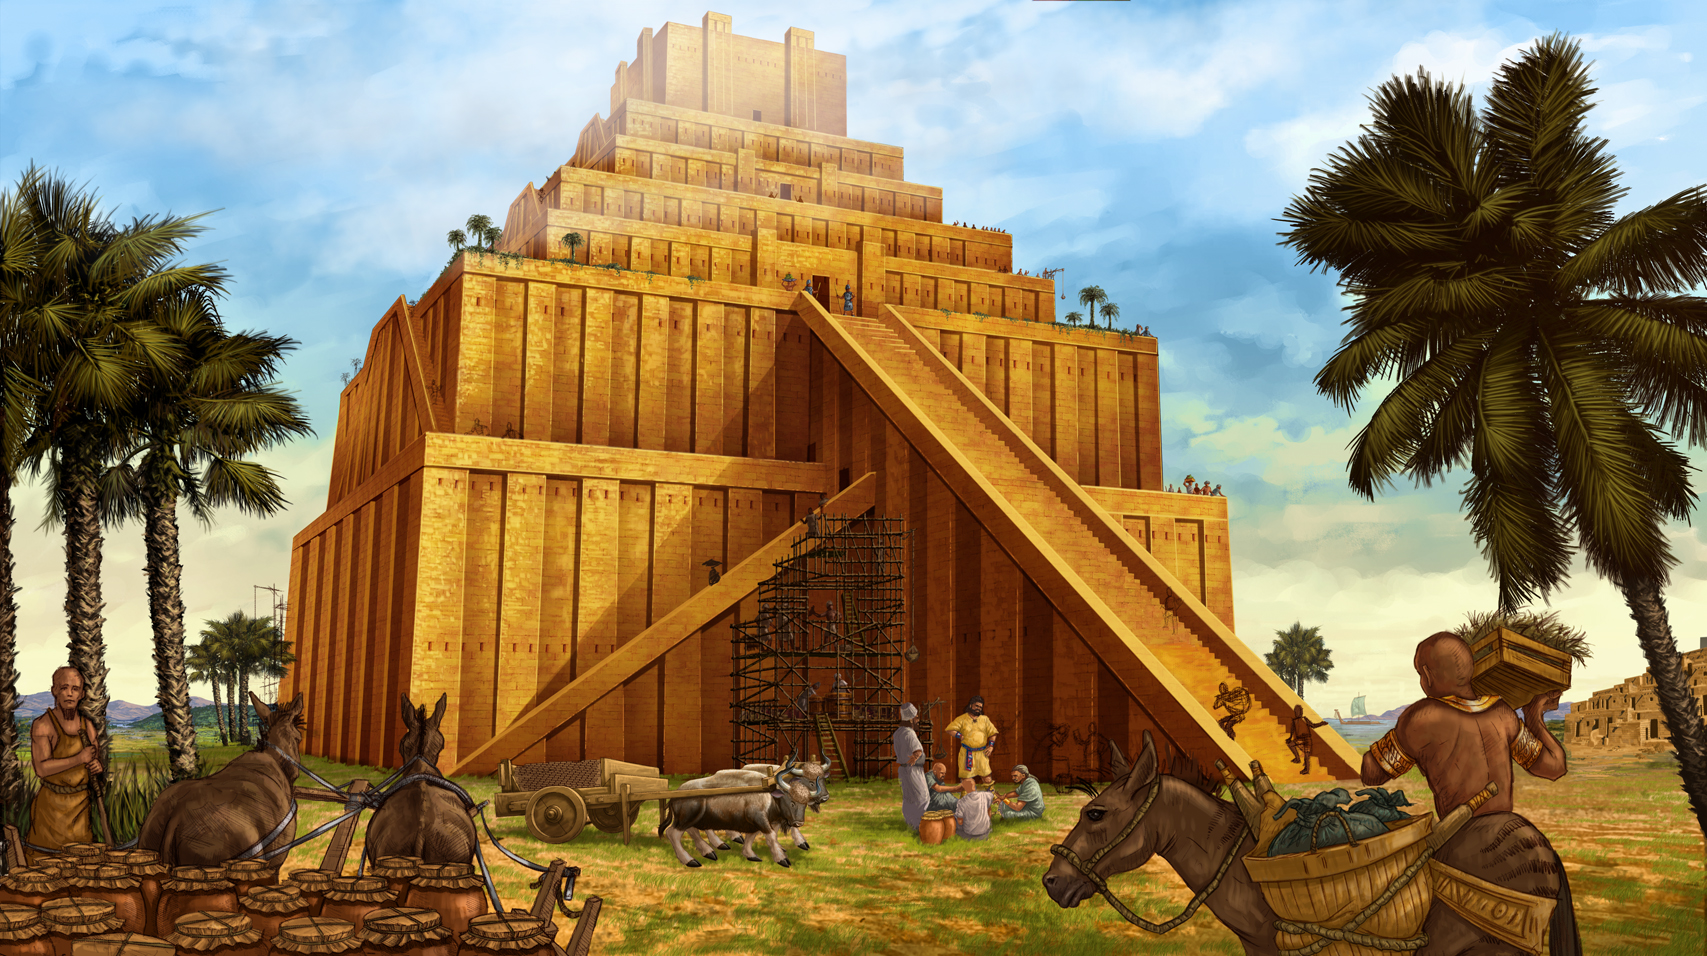 Tower of Babel In The Bible